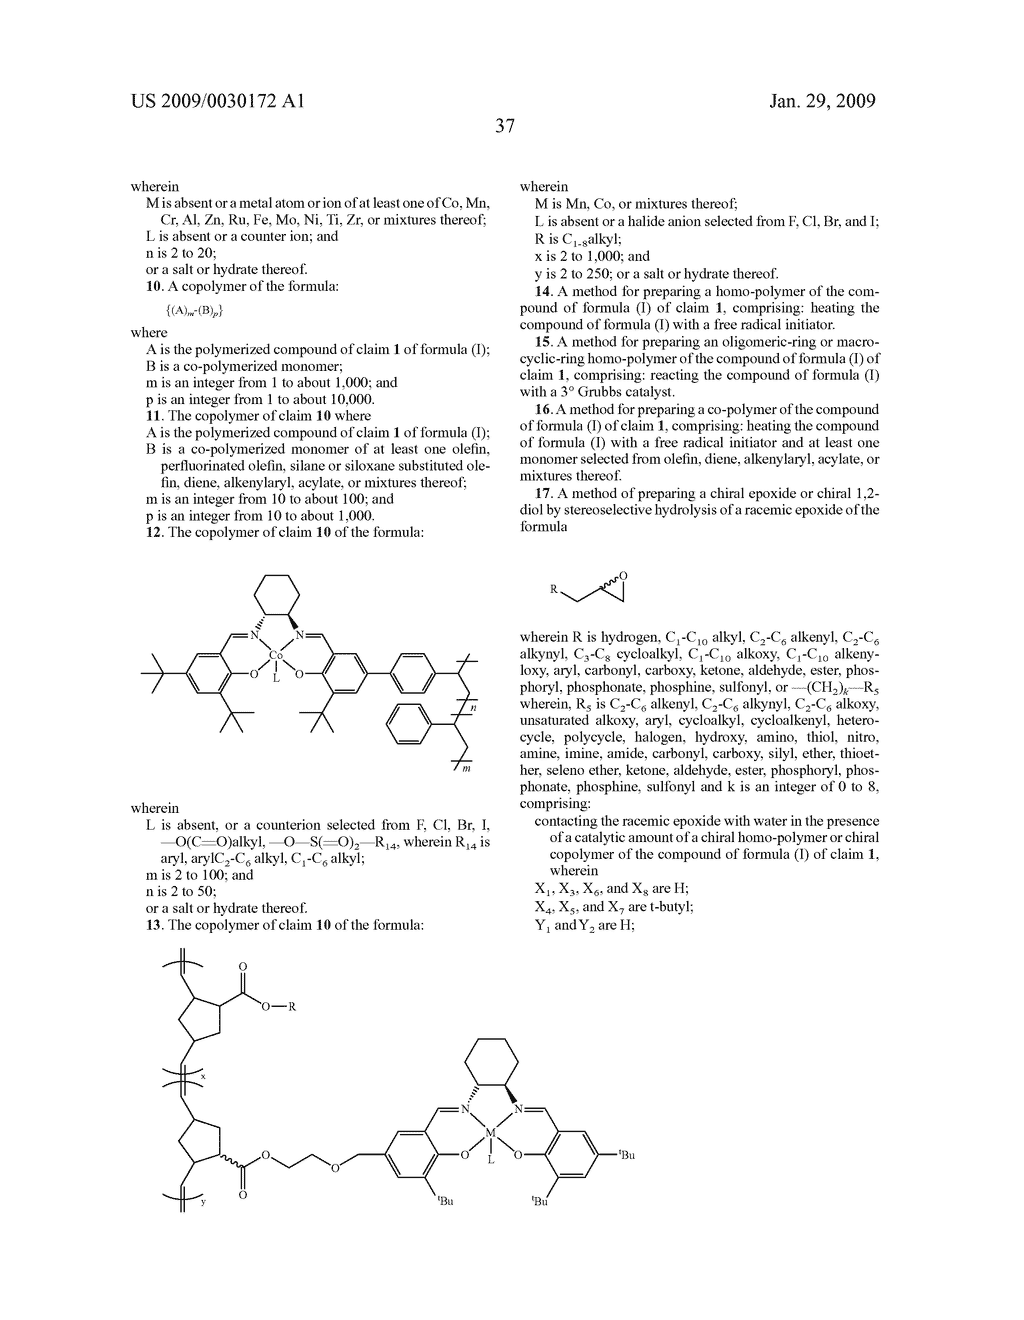 POLYMERIC SALEN COMPOUNDS AND METHODS THEREOF - diagram, schematic, and image 38